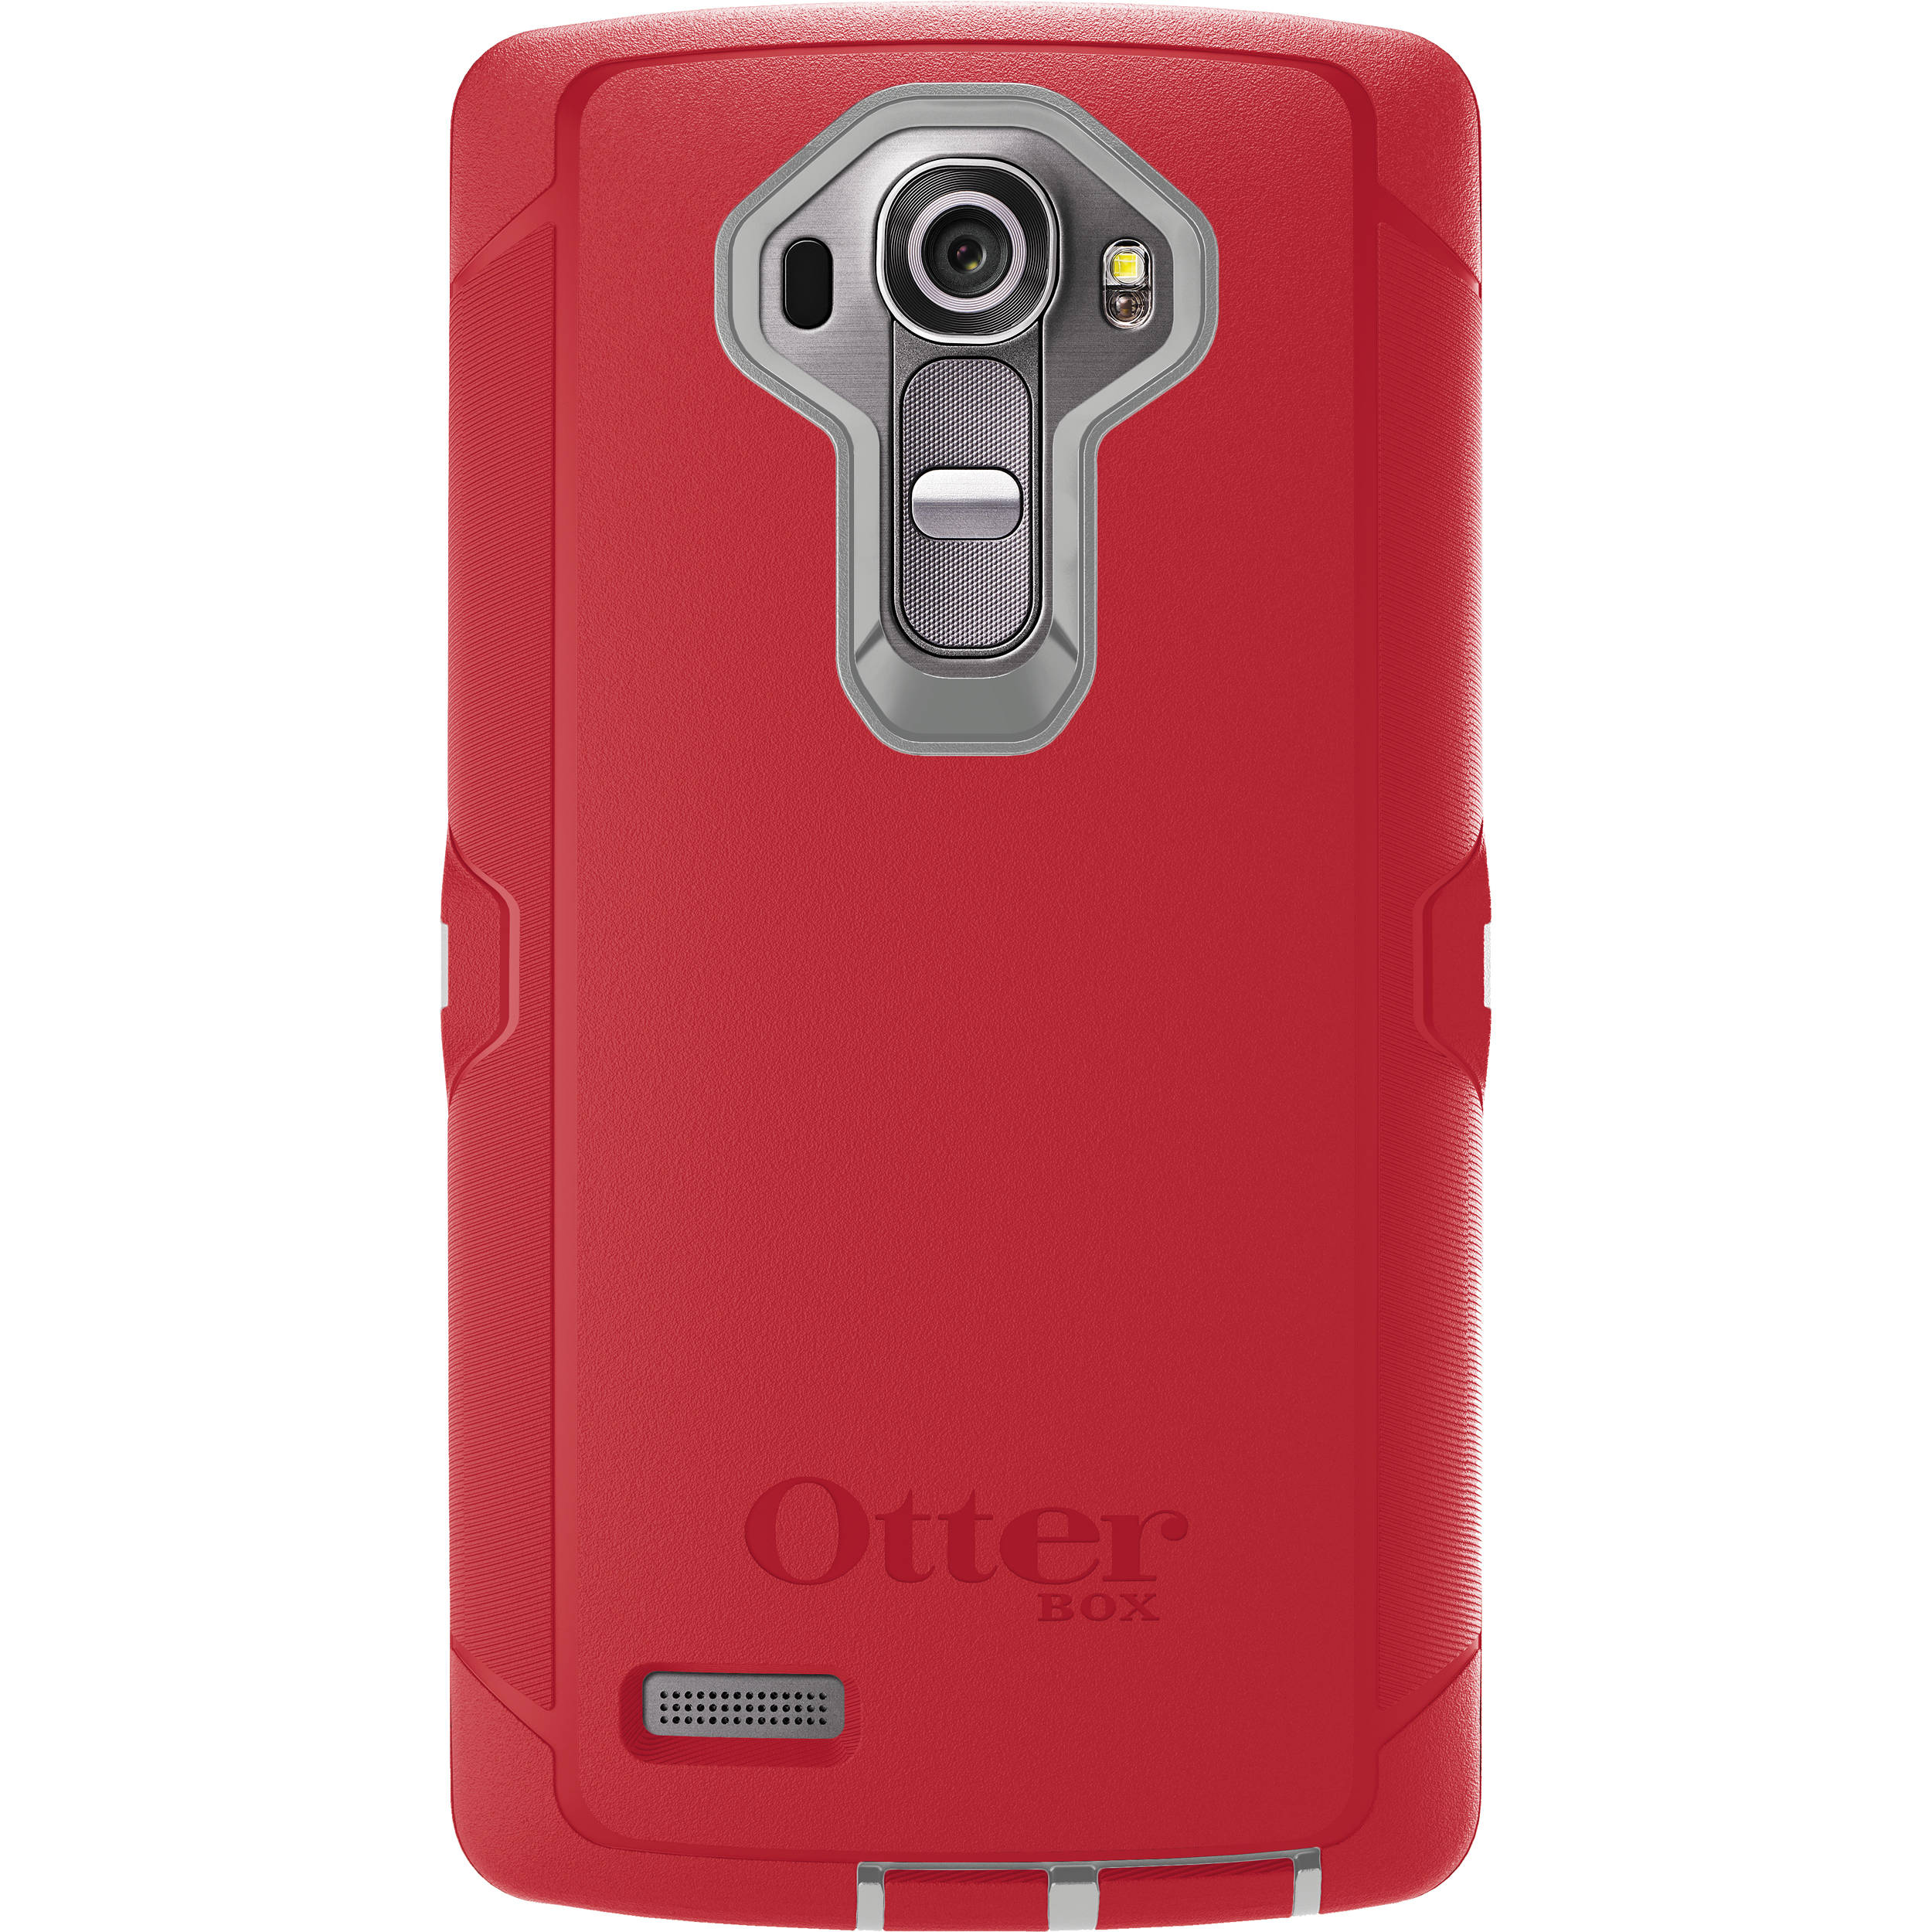 cheap for discount f074d 9d3b4 OtterBox Defender Series Case for LG G4 (Fire Within) 77-51530